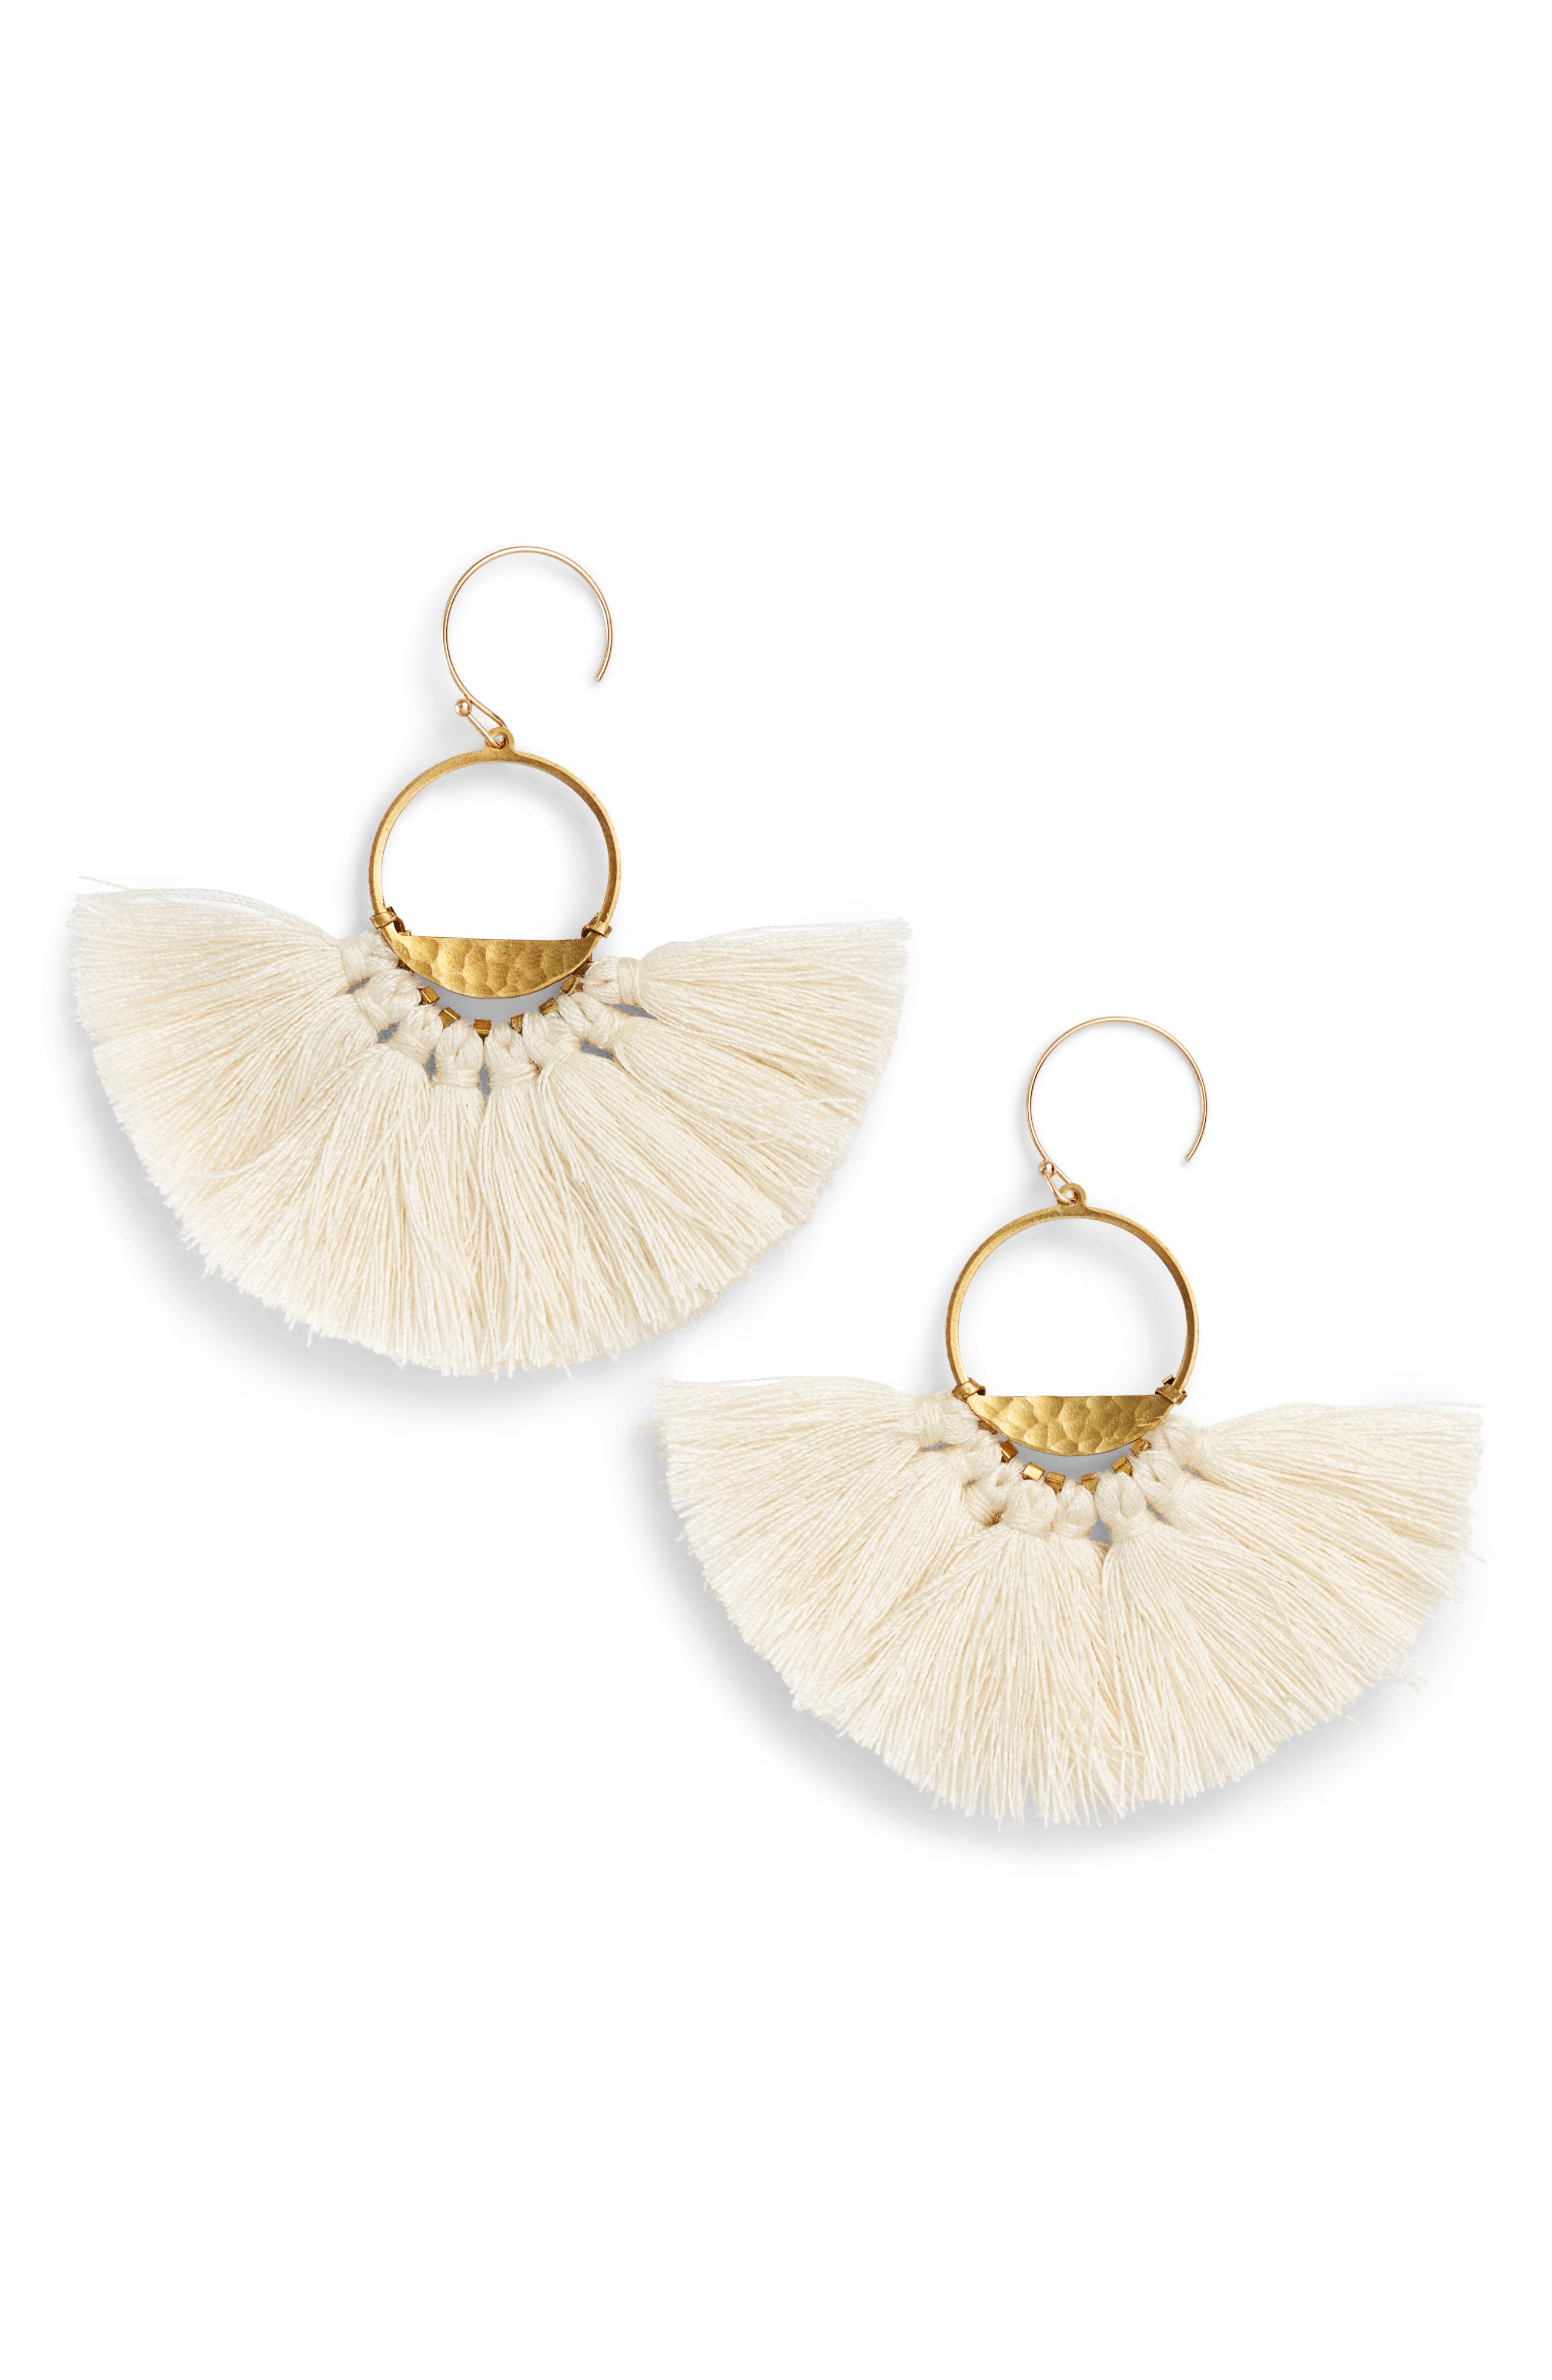 Flutter Tassel Earrings,                         Main,                         color, 100